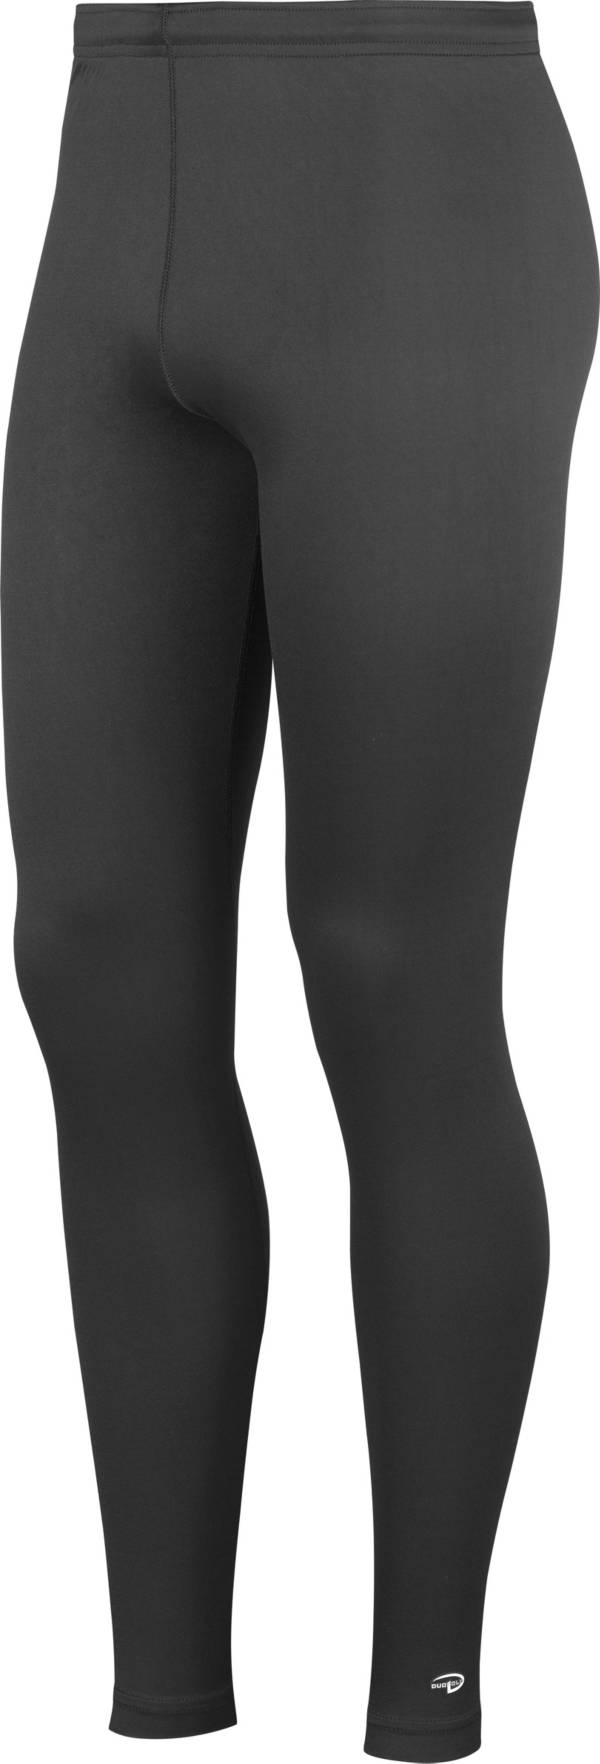 Duofold Men's Varitherm Midweight Pant product image